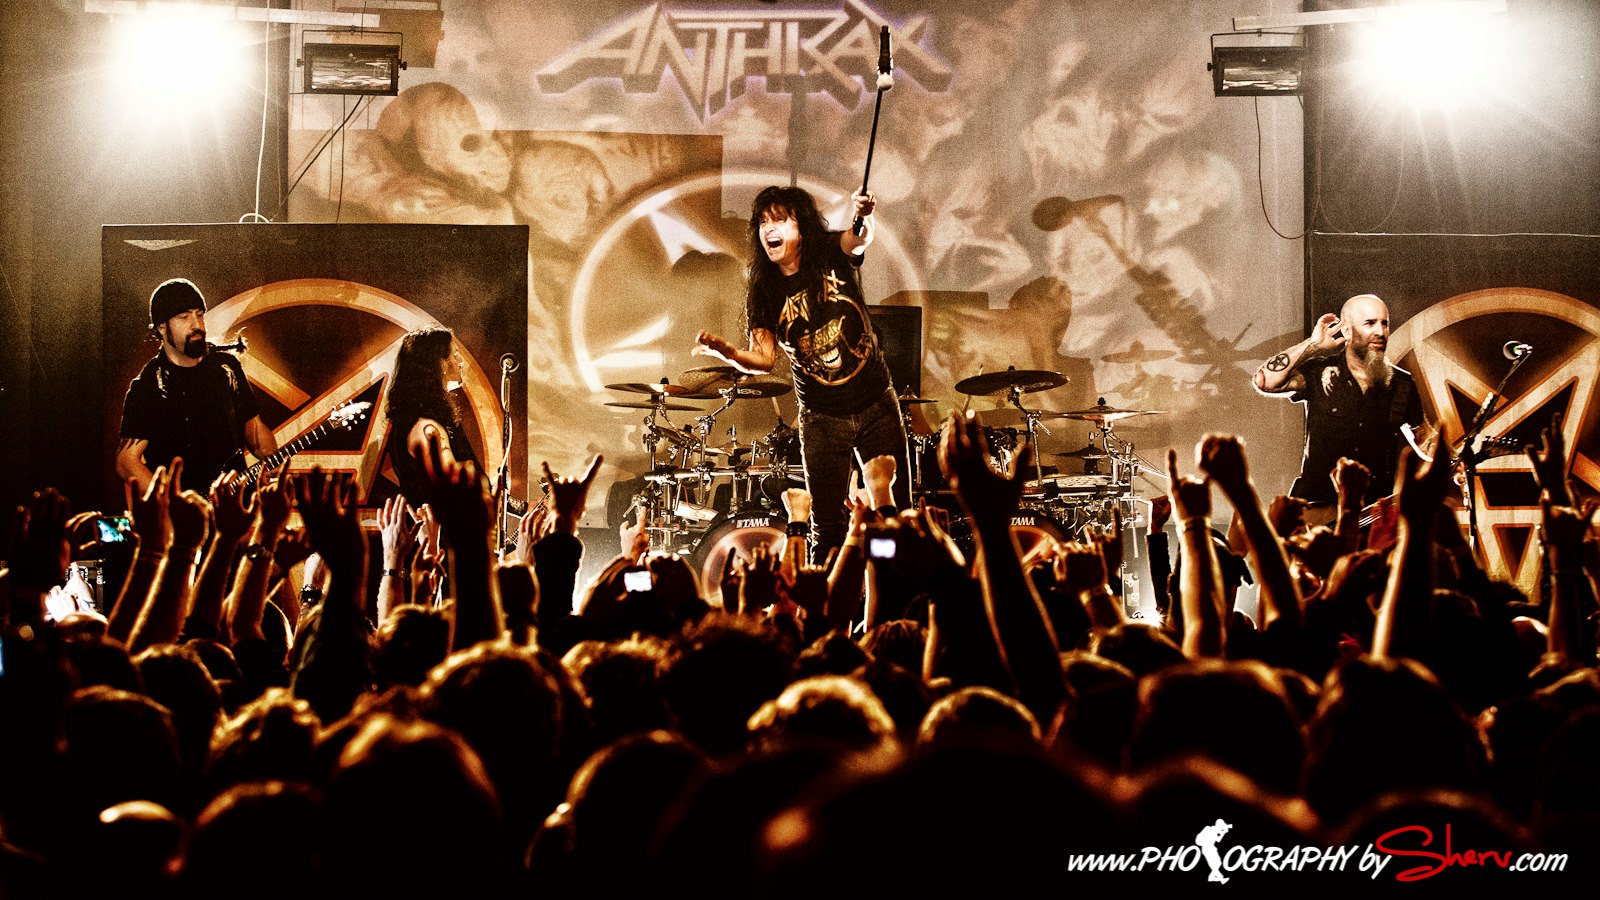 Anthrax Wallpapers and Background Images   stmednet 1600x900